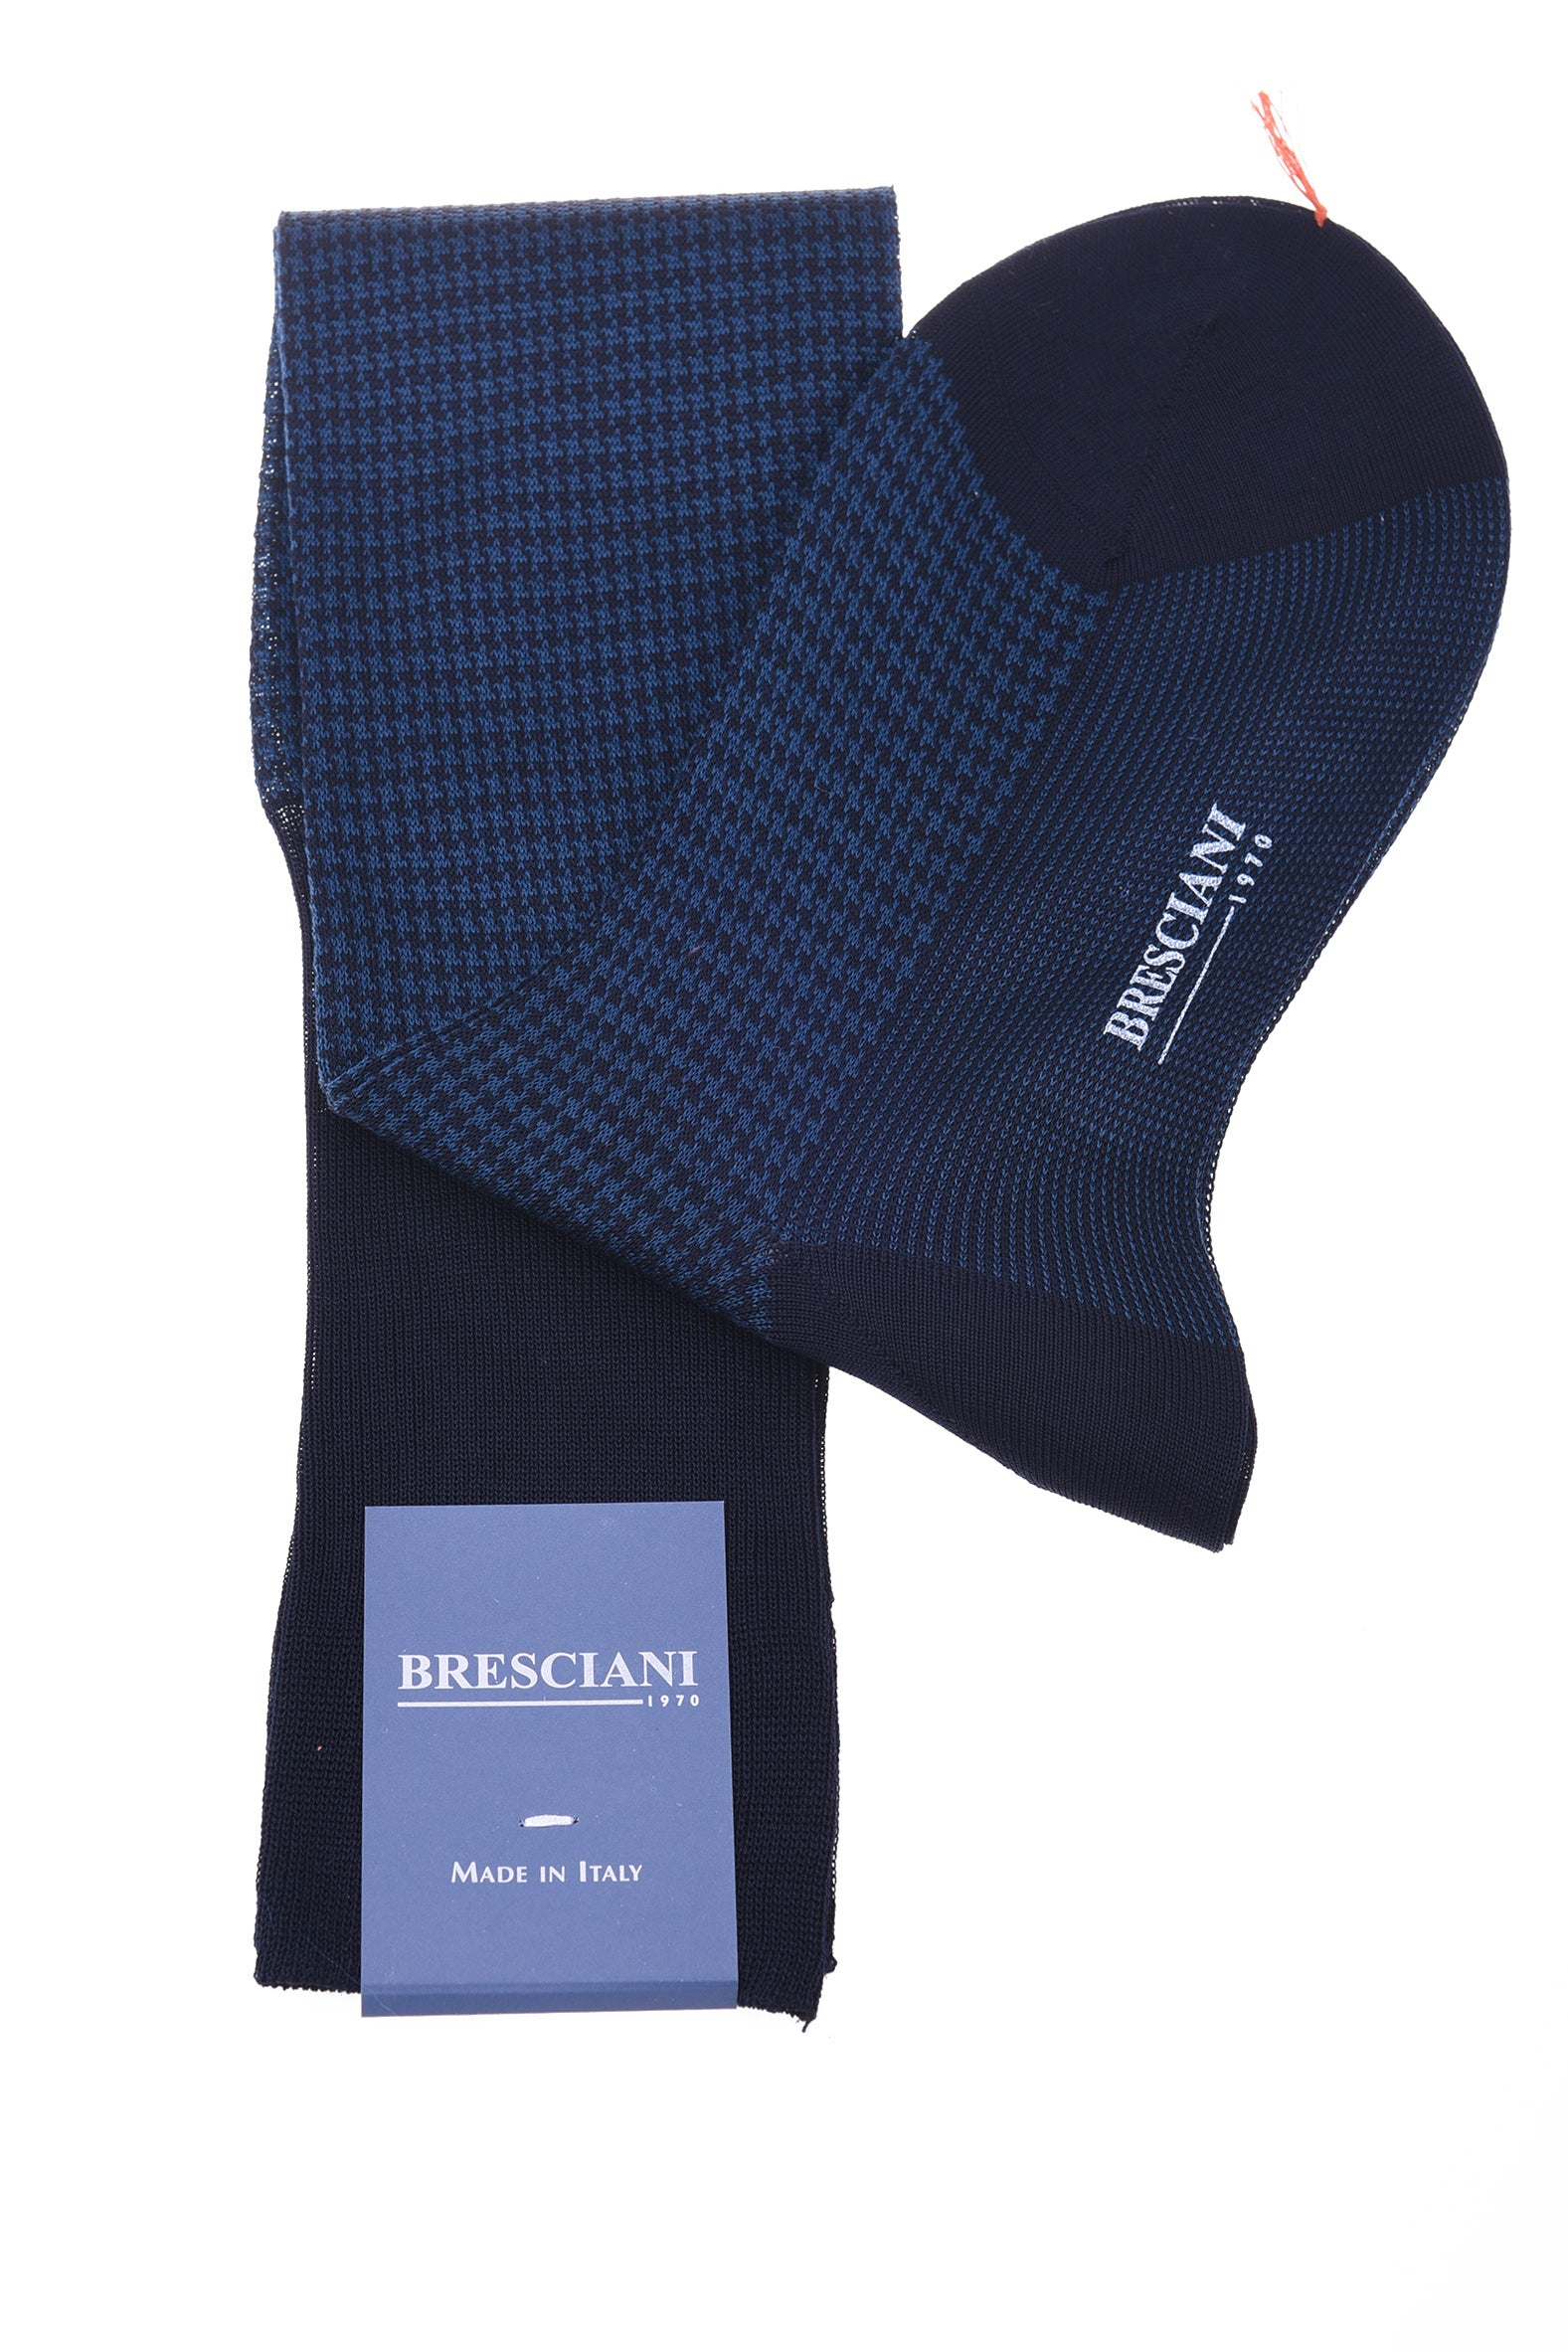 Bresciani Two-Tone Herringbone Cotton Knee Length Socks